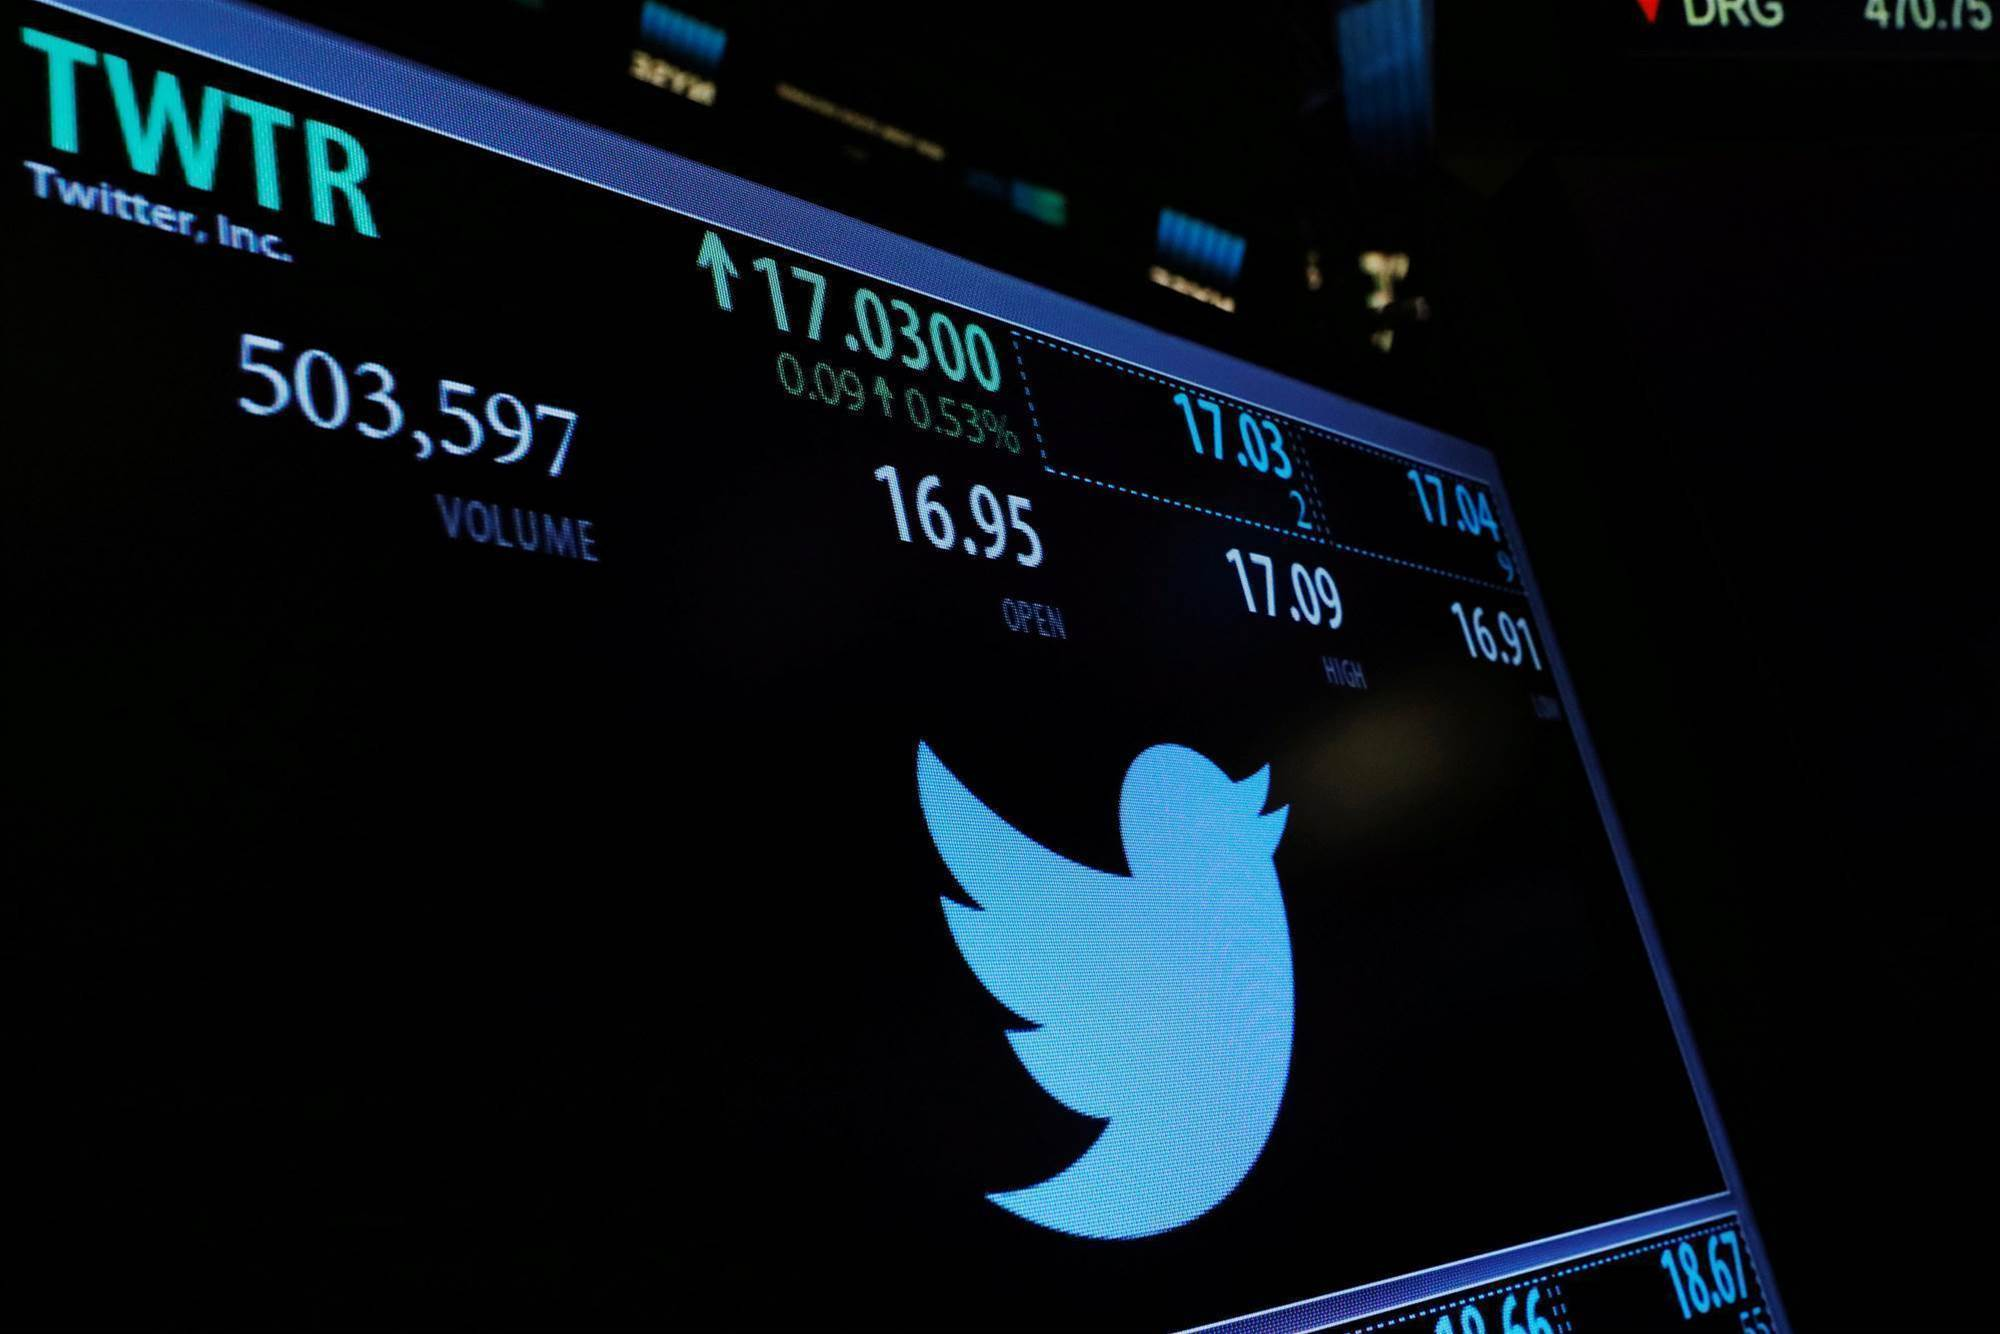 Twitter urges password reset for all users